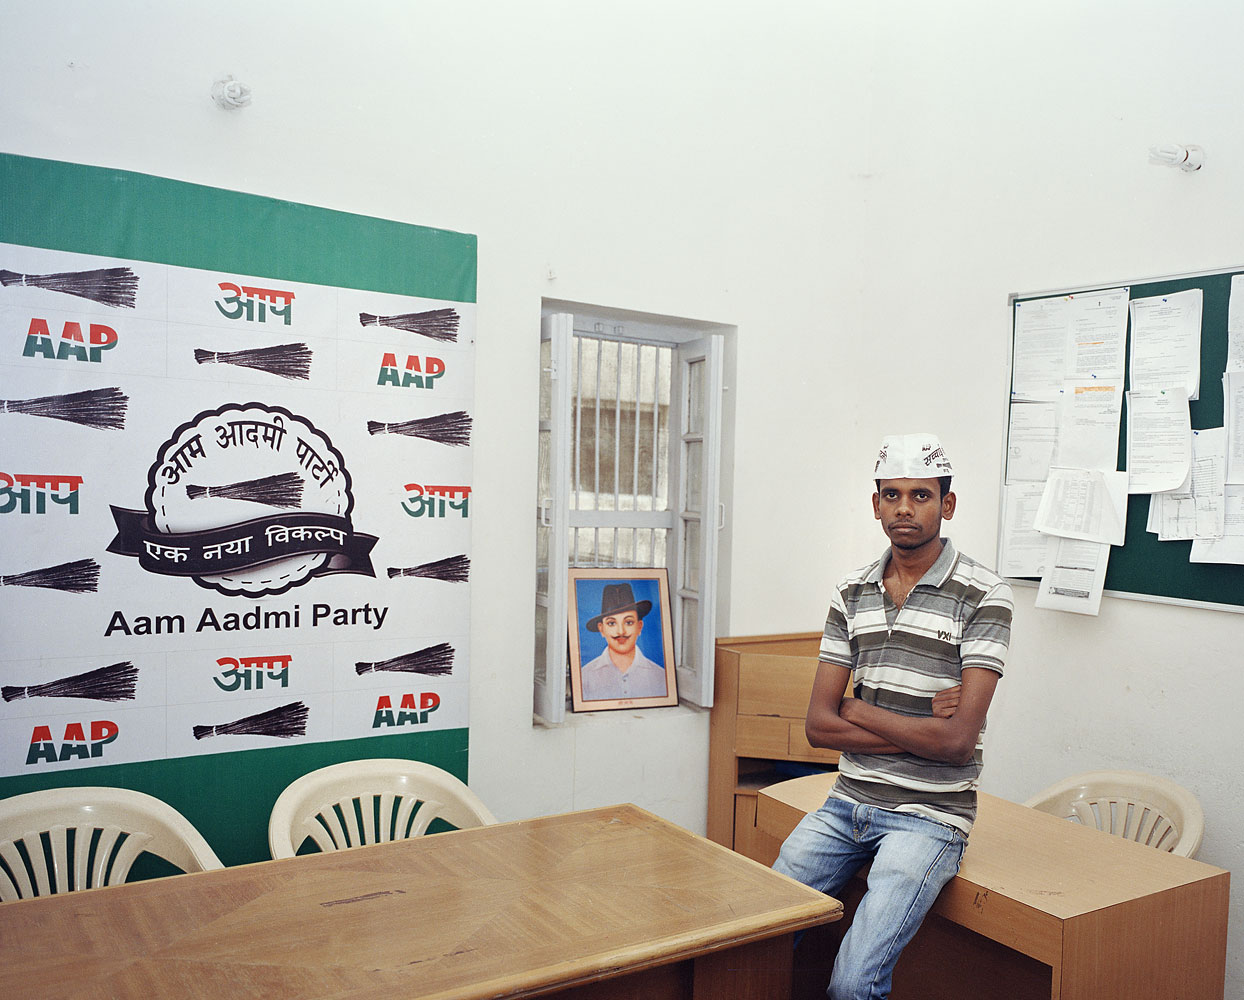 Anup Shah, 21, Engineering student                               Shah volunteers for the Aam Aadmi party in his spare time. He believes that the party, which has its roots in an anti-corruption movement that came to national prominence in 2011, can change India's feudal system of governance.